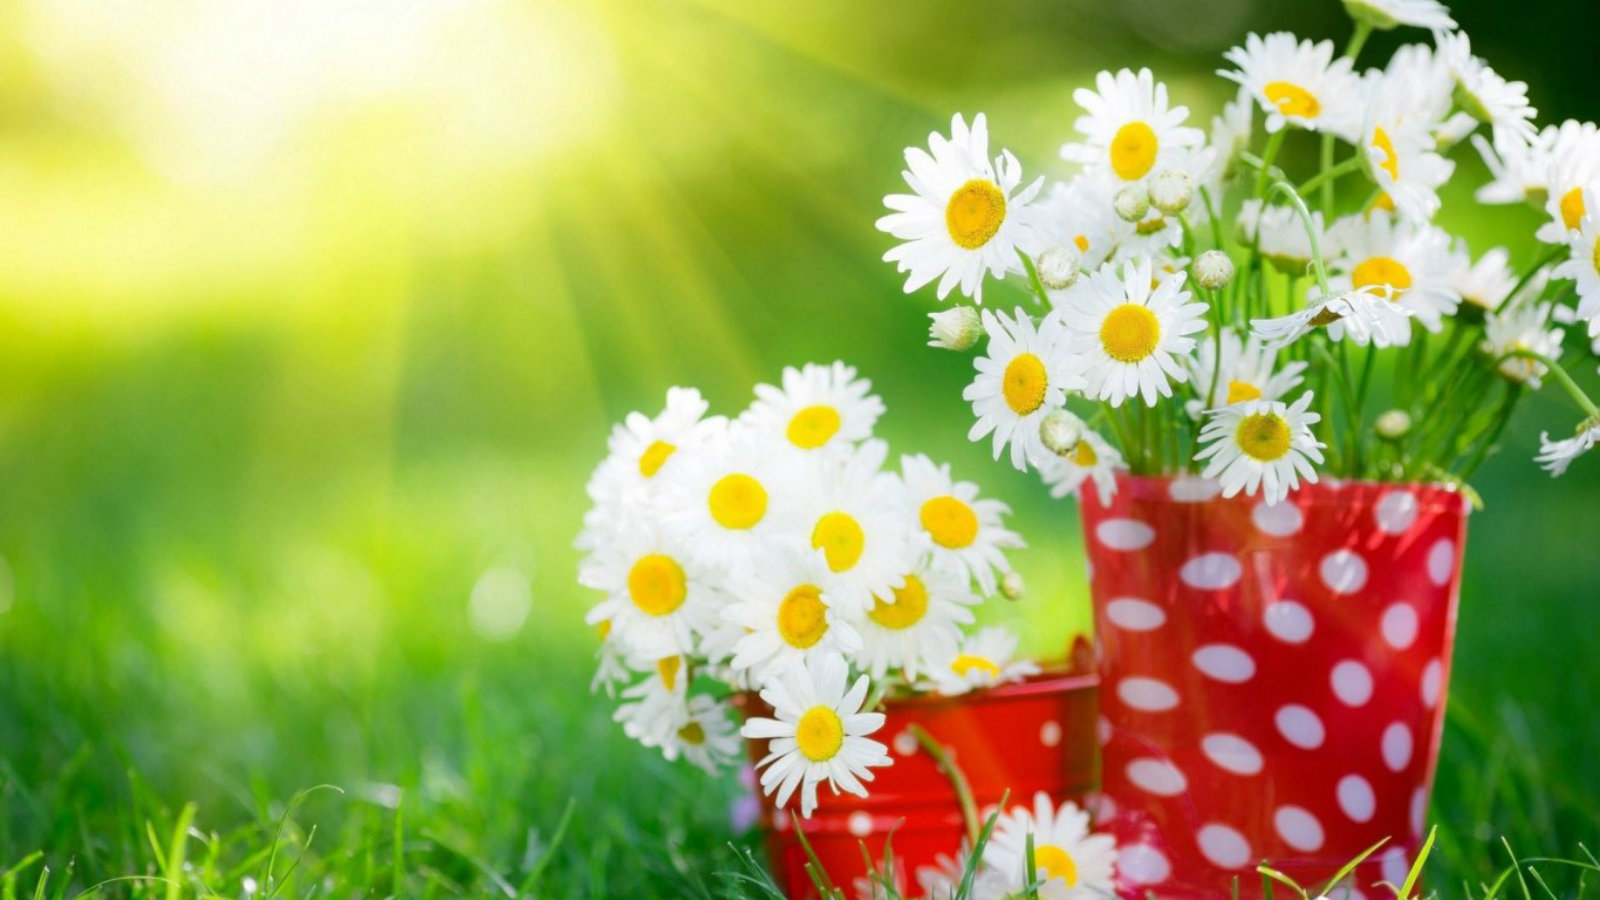 Download most beautiful flowers wallpapers in the world gallery most beautiful flowers wallpapers in the world dhlflorist Image collections